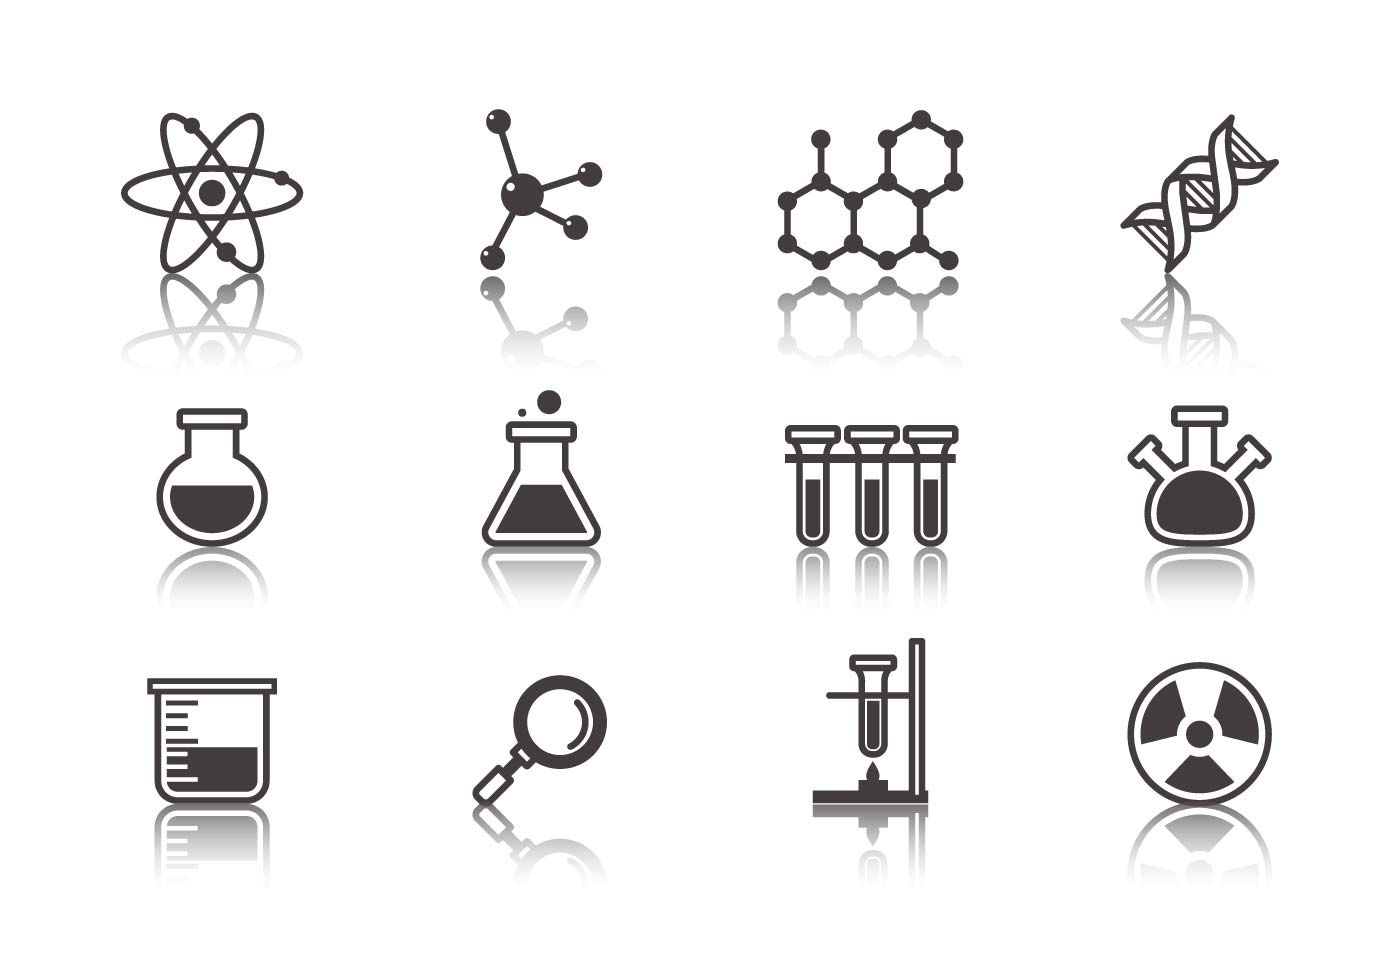 Free science and laboratory icons vector download free vector art free science and laboratory icons vector download free vector art stock graphics images buycottarizona Image collections